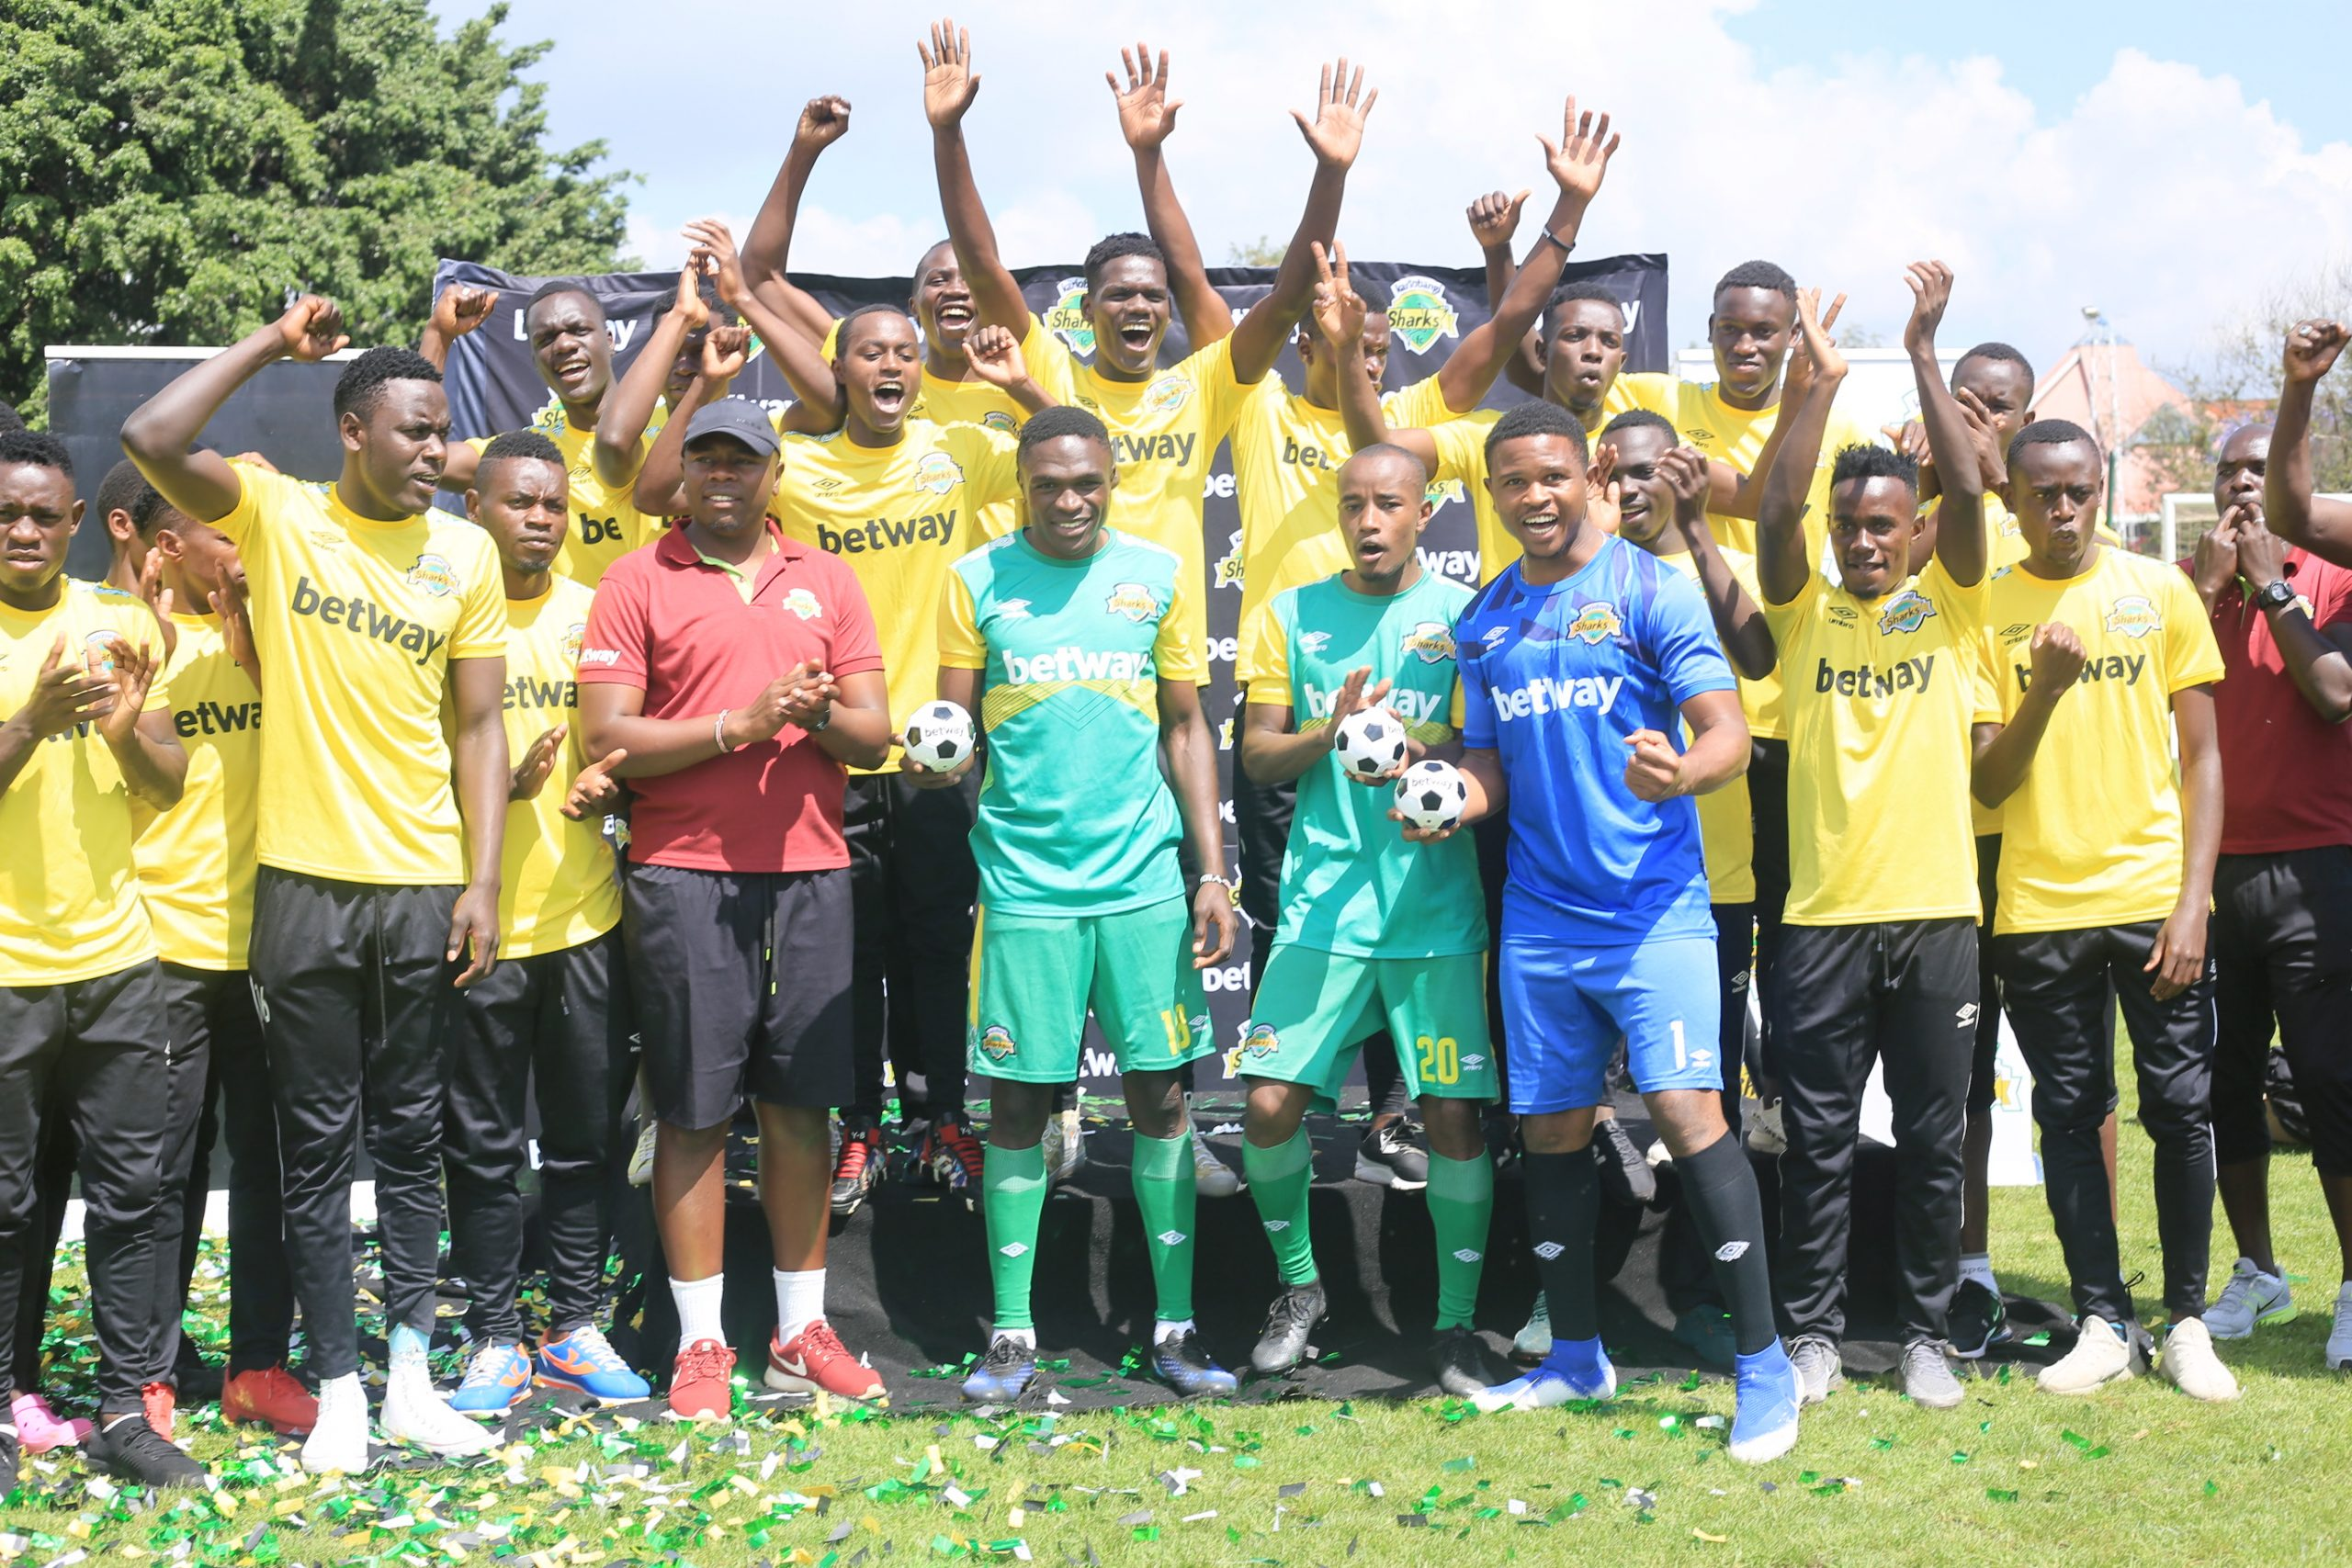 Kariobangi Sharks players don the new Betway branded jersey at Utalii Sports Grounds. www.businesstoday.co.ke